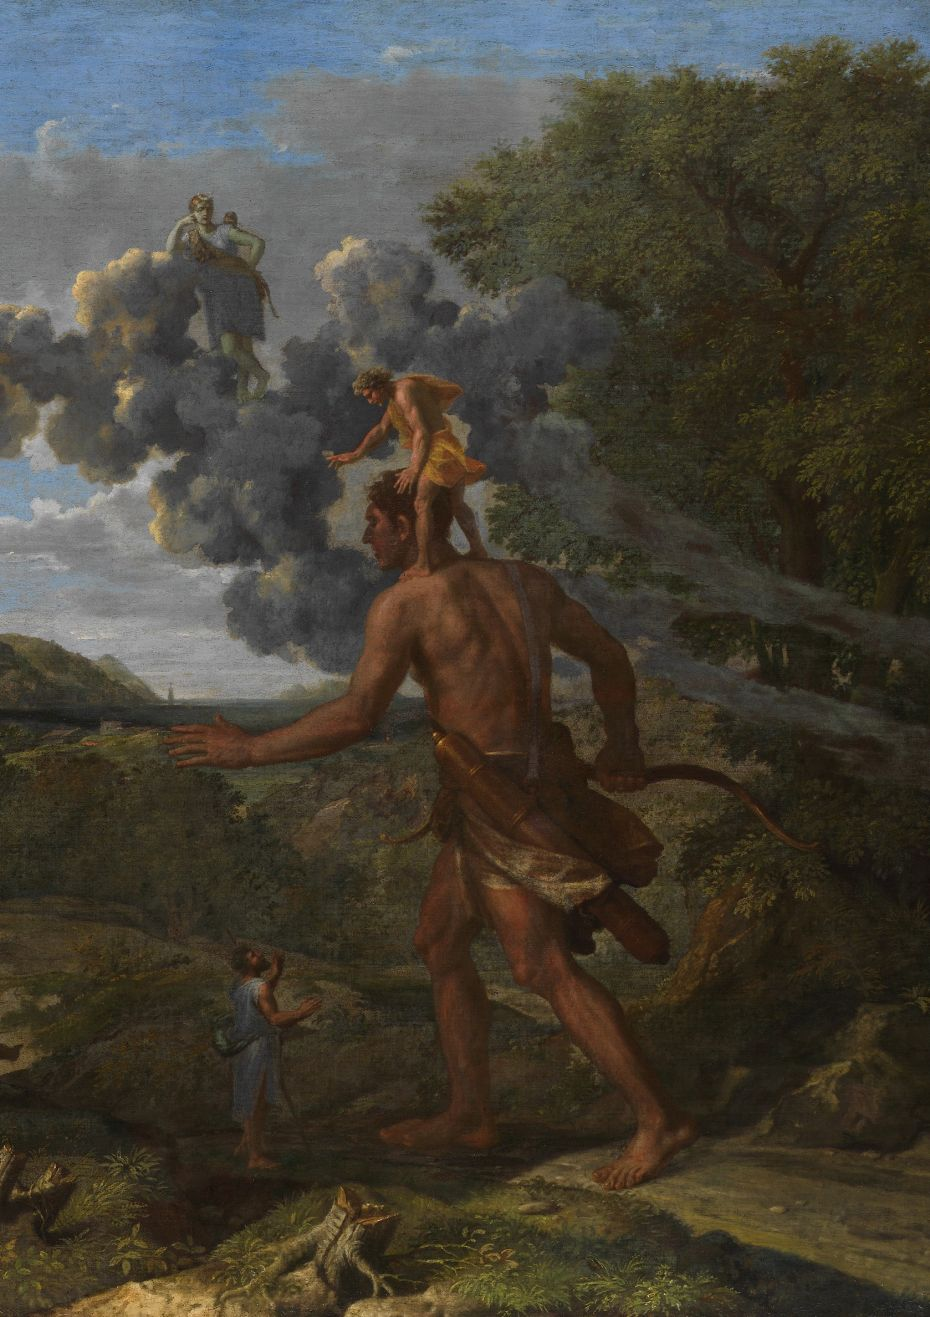 Detail picturing Cedalion standing on the shoulders of Orion from Nicolas Poussin's painting 'Blind Orion Searching for the Rising Sun.' (1658, Oil on canvas, 46 ⅞ x 72 in.)